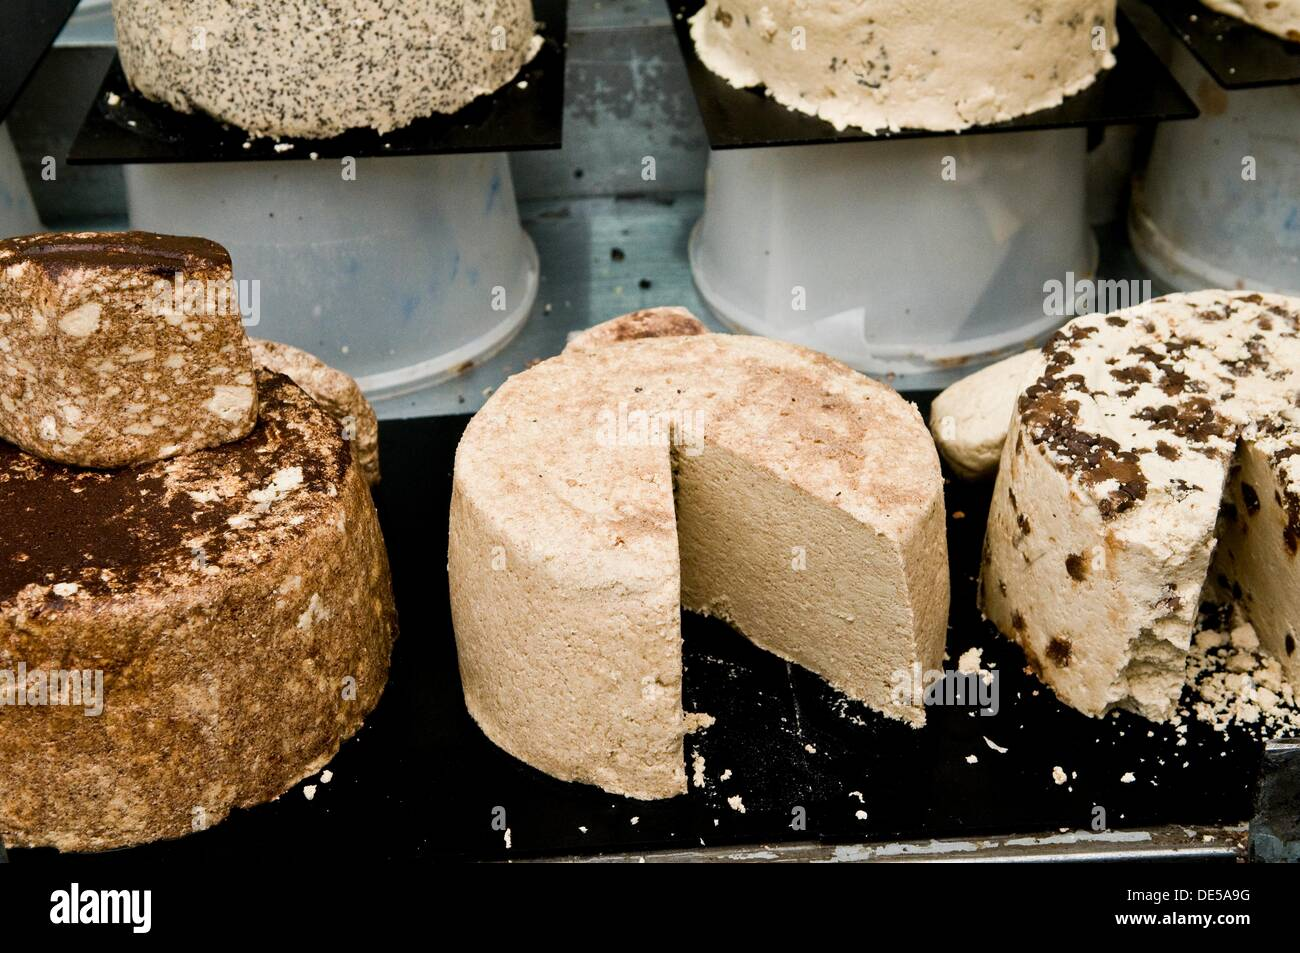 A big variety of Halva sweets sold in the Mahane Yehuda market of Jerusalem. - Stock Image